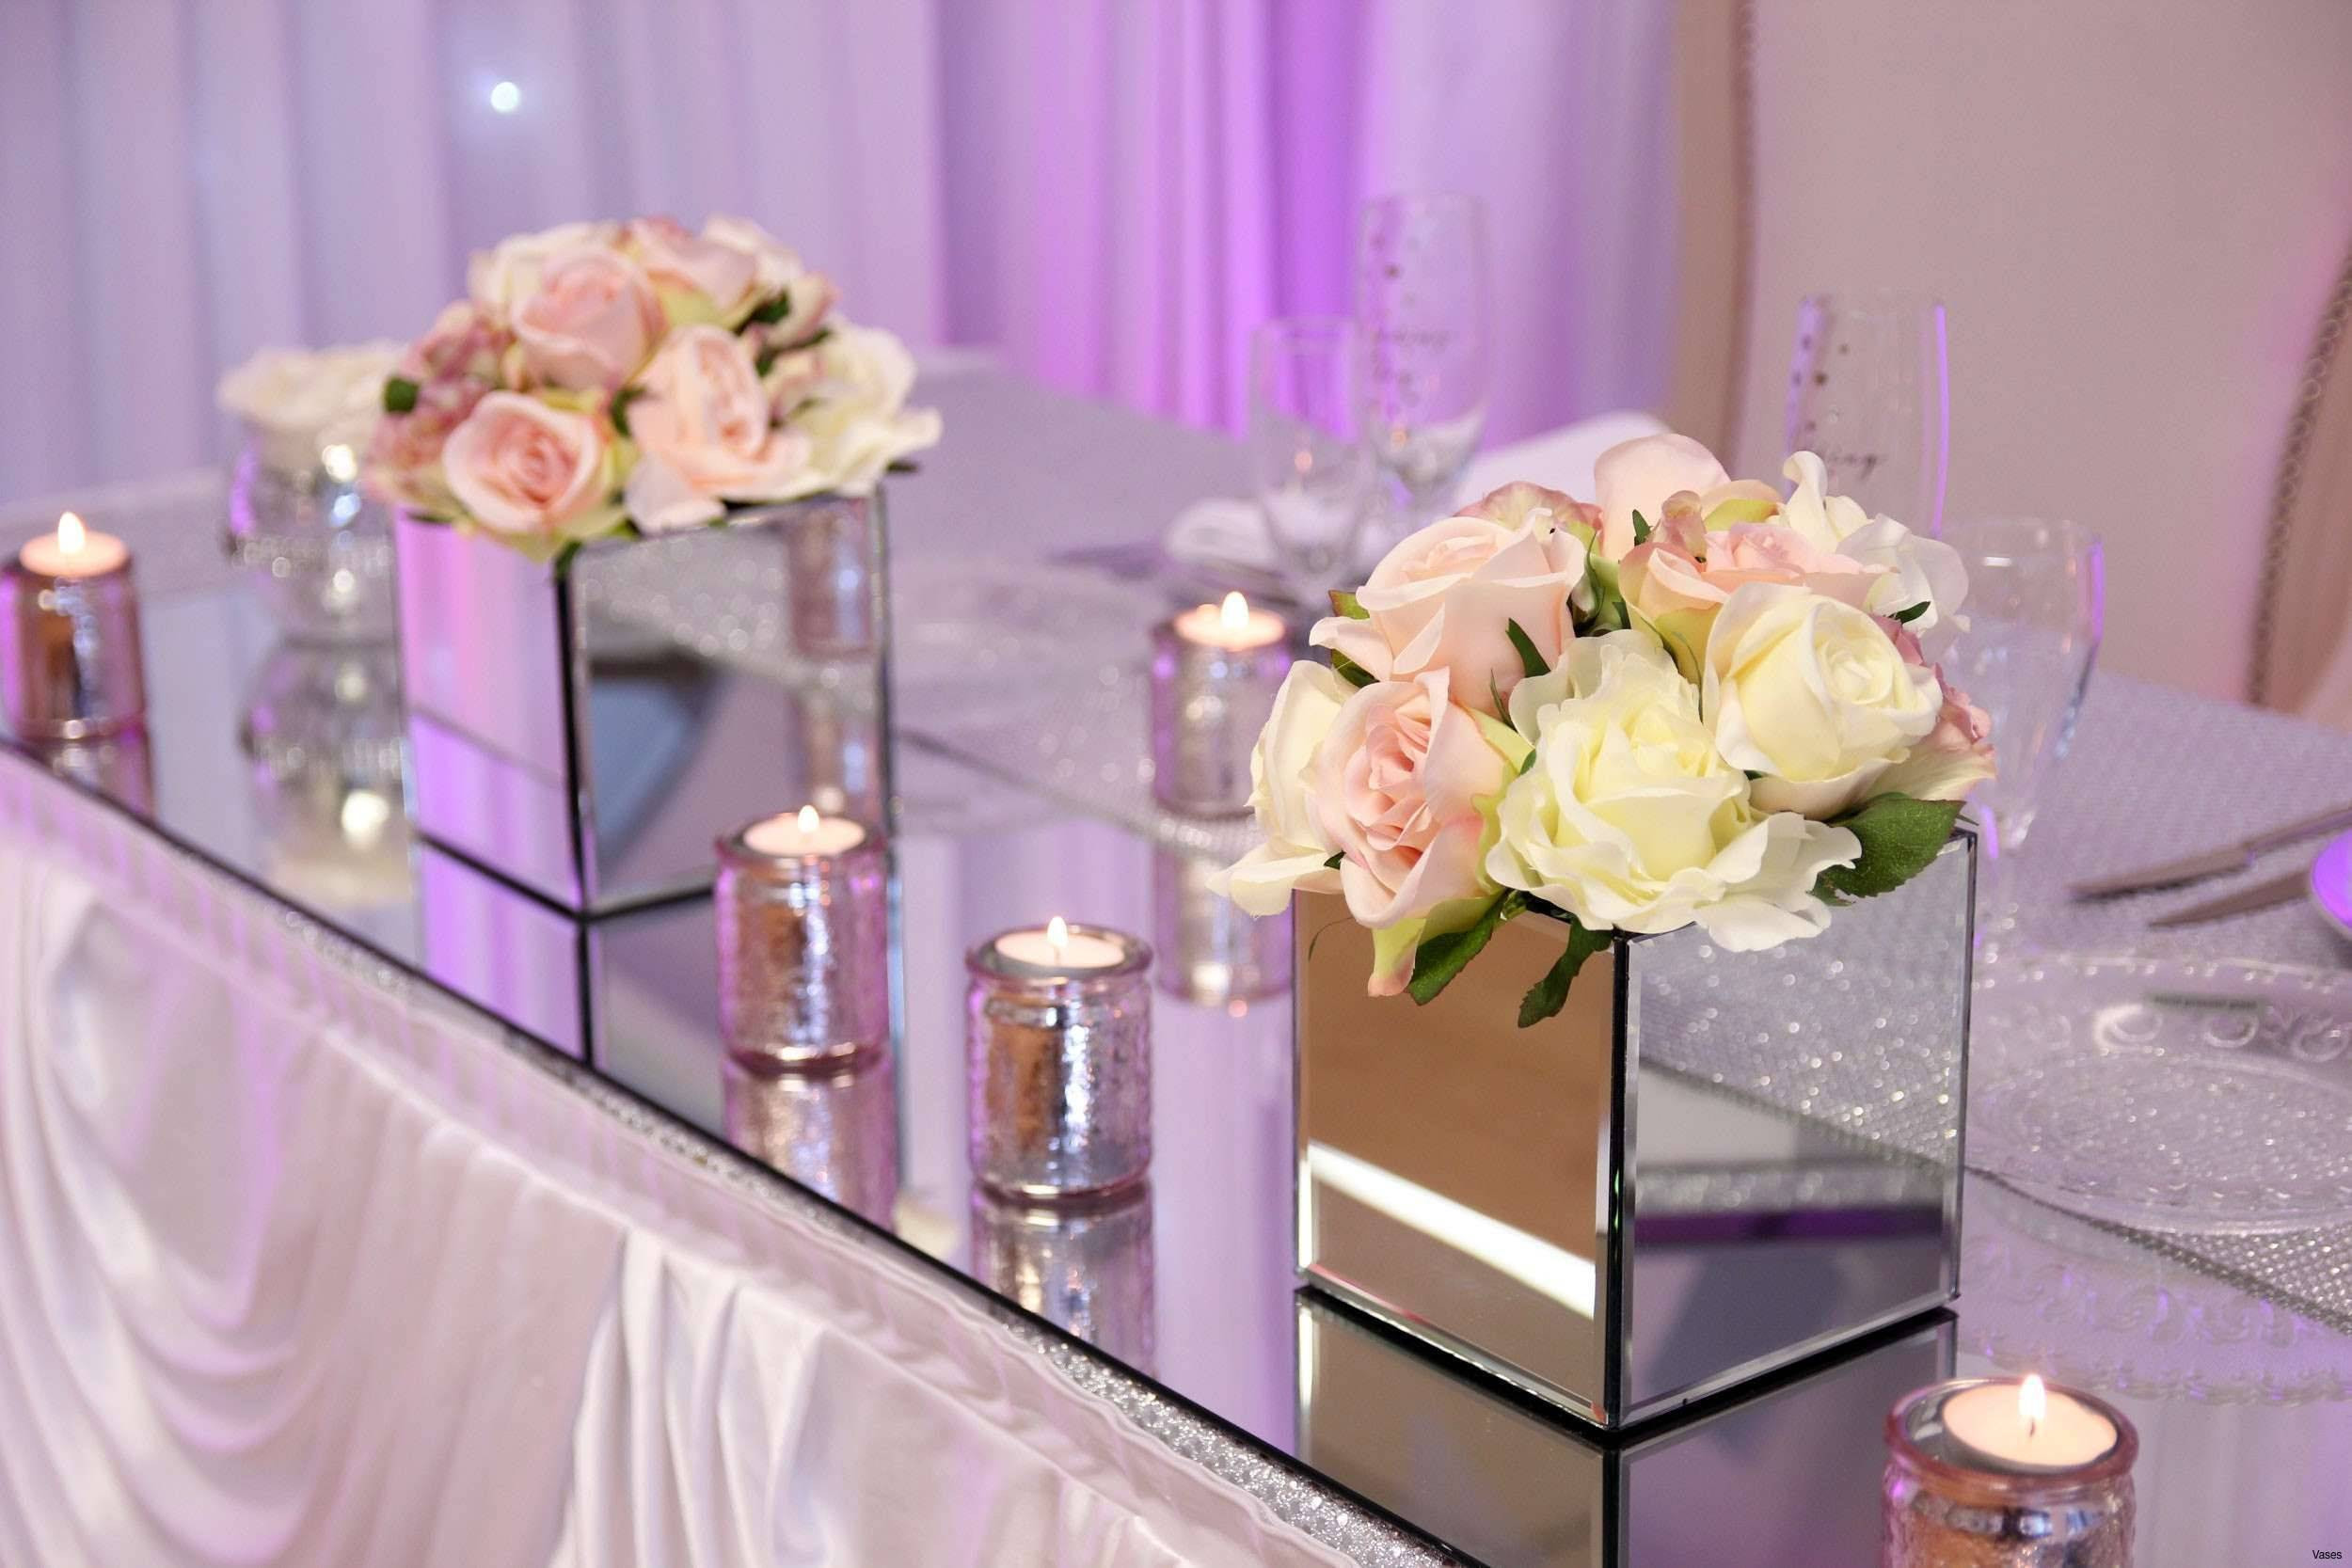 vases for sale of mirrored square vase 3h vases mirror table decorationi 0d weddings pertaining to mirrored square vase 3h vases mirror table decorationi 0d weddings ideas of lighted outdoor halloween decorations